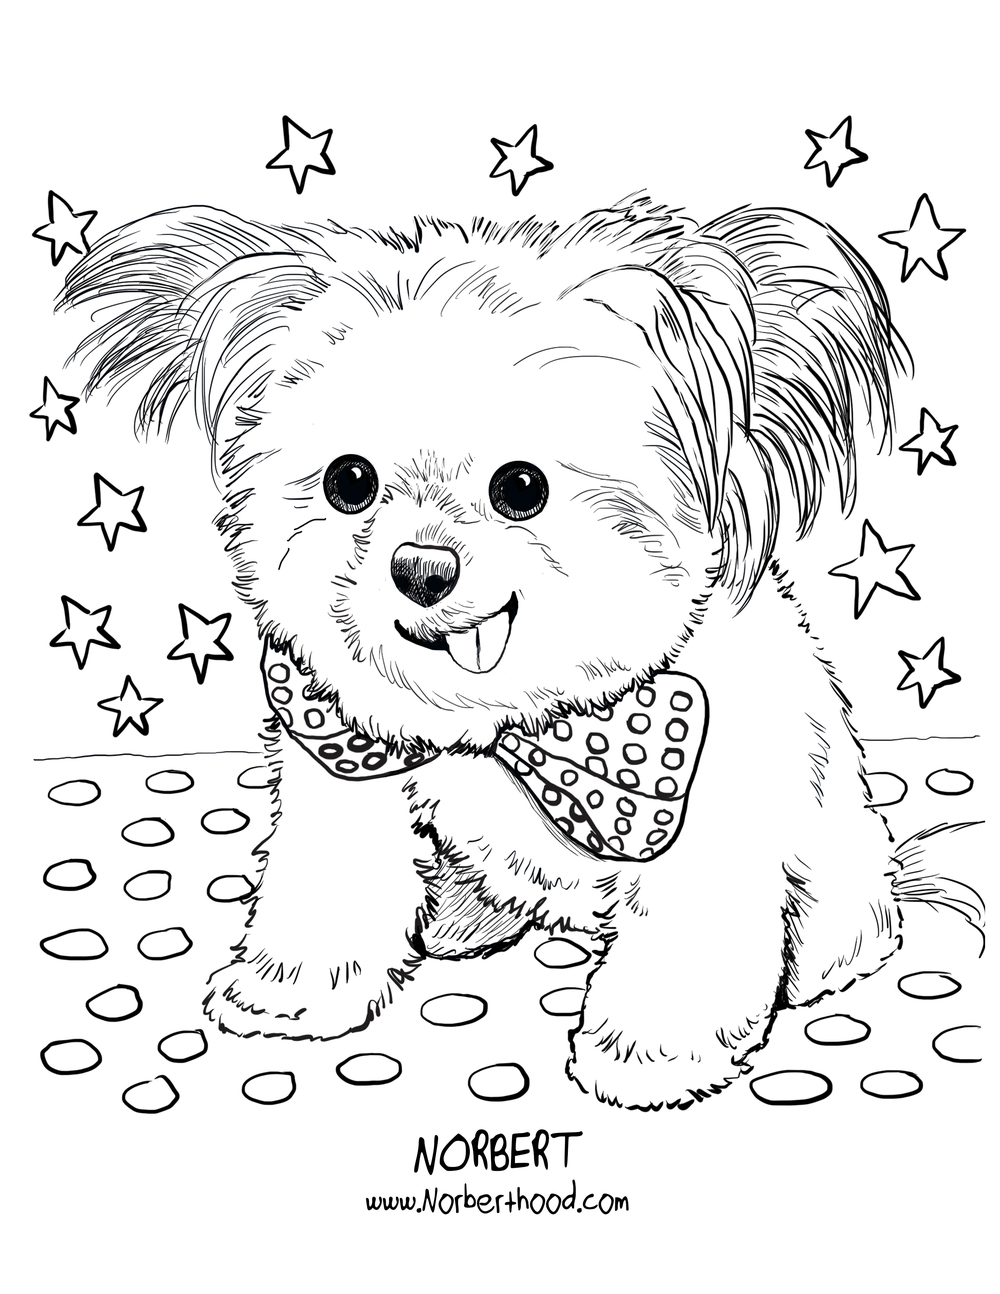 Norbert July coloring page_Polly Parker Press.jpg